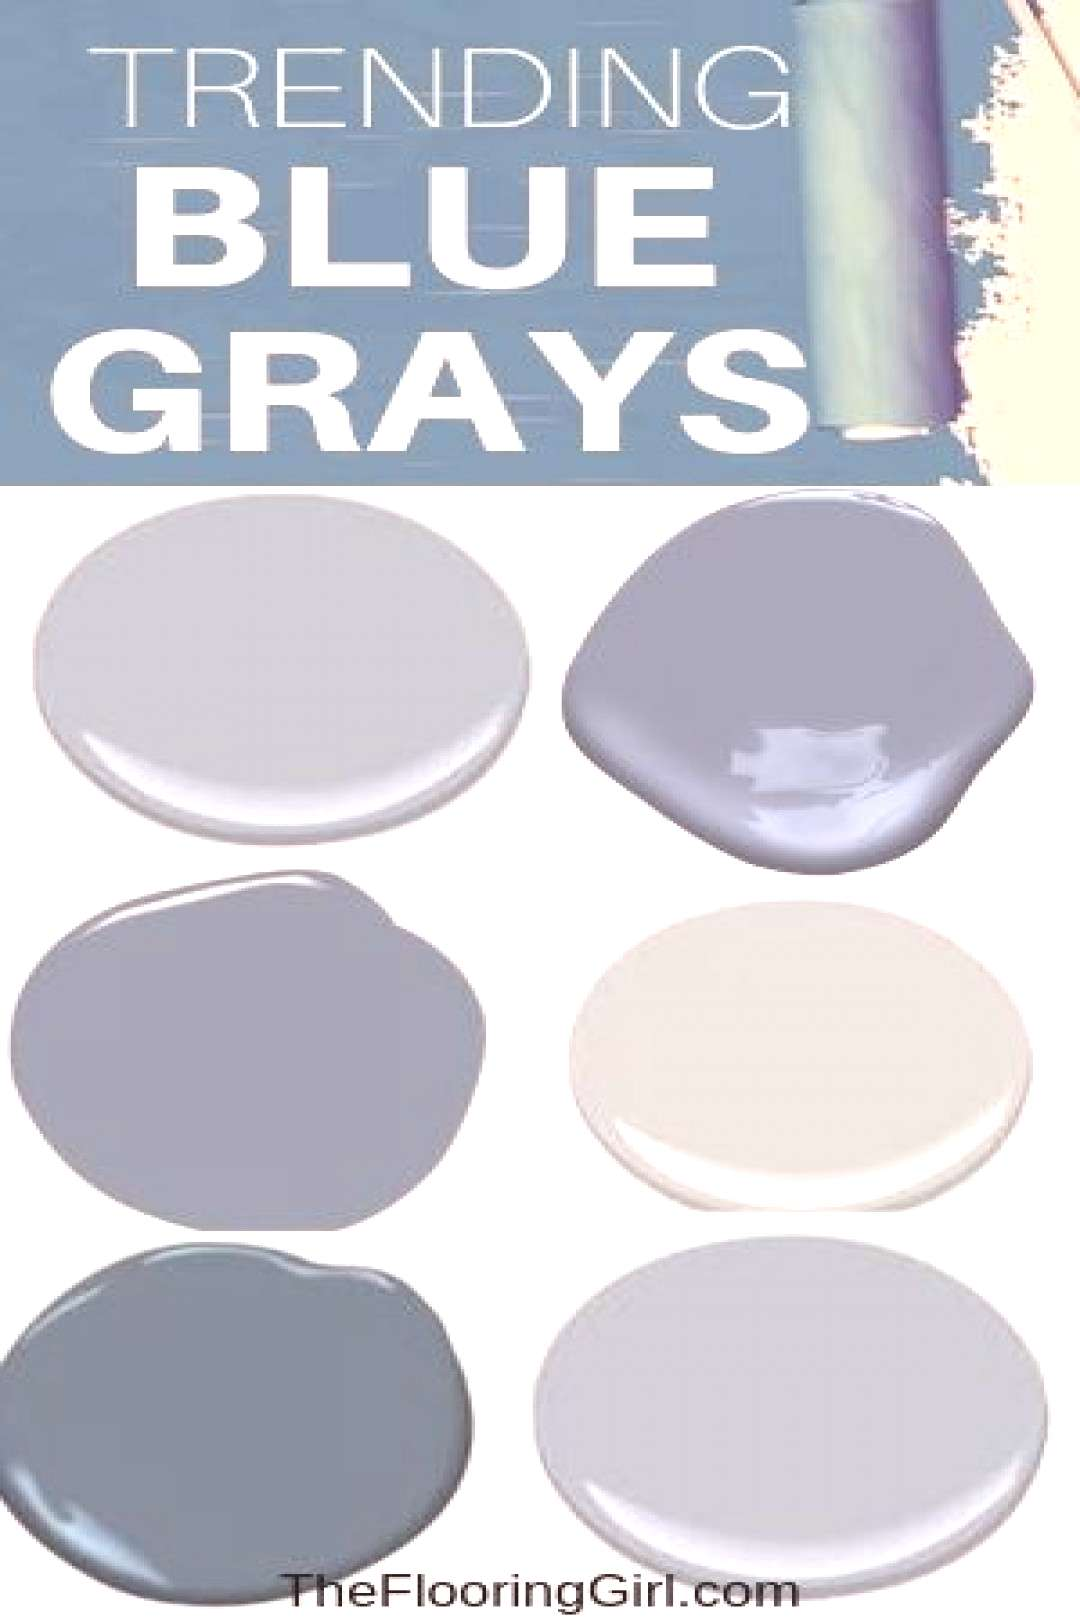 Trending blue gray paint colors that will add style to your home